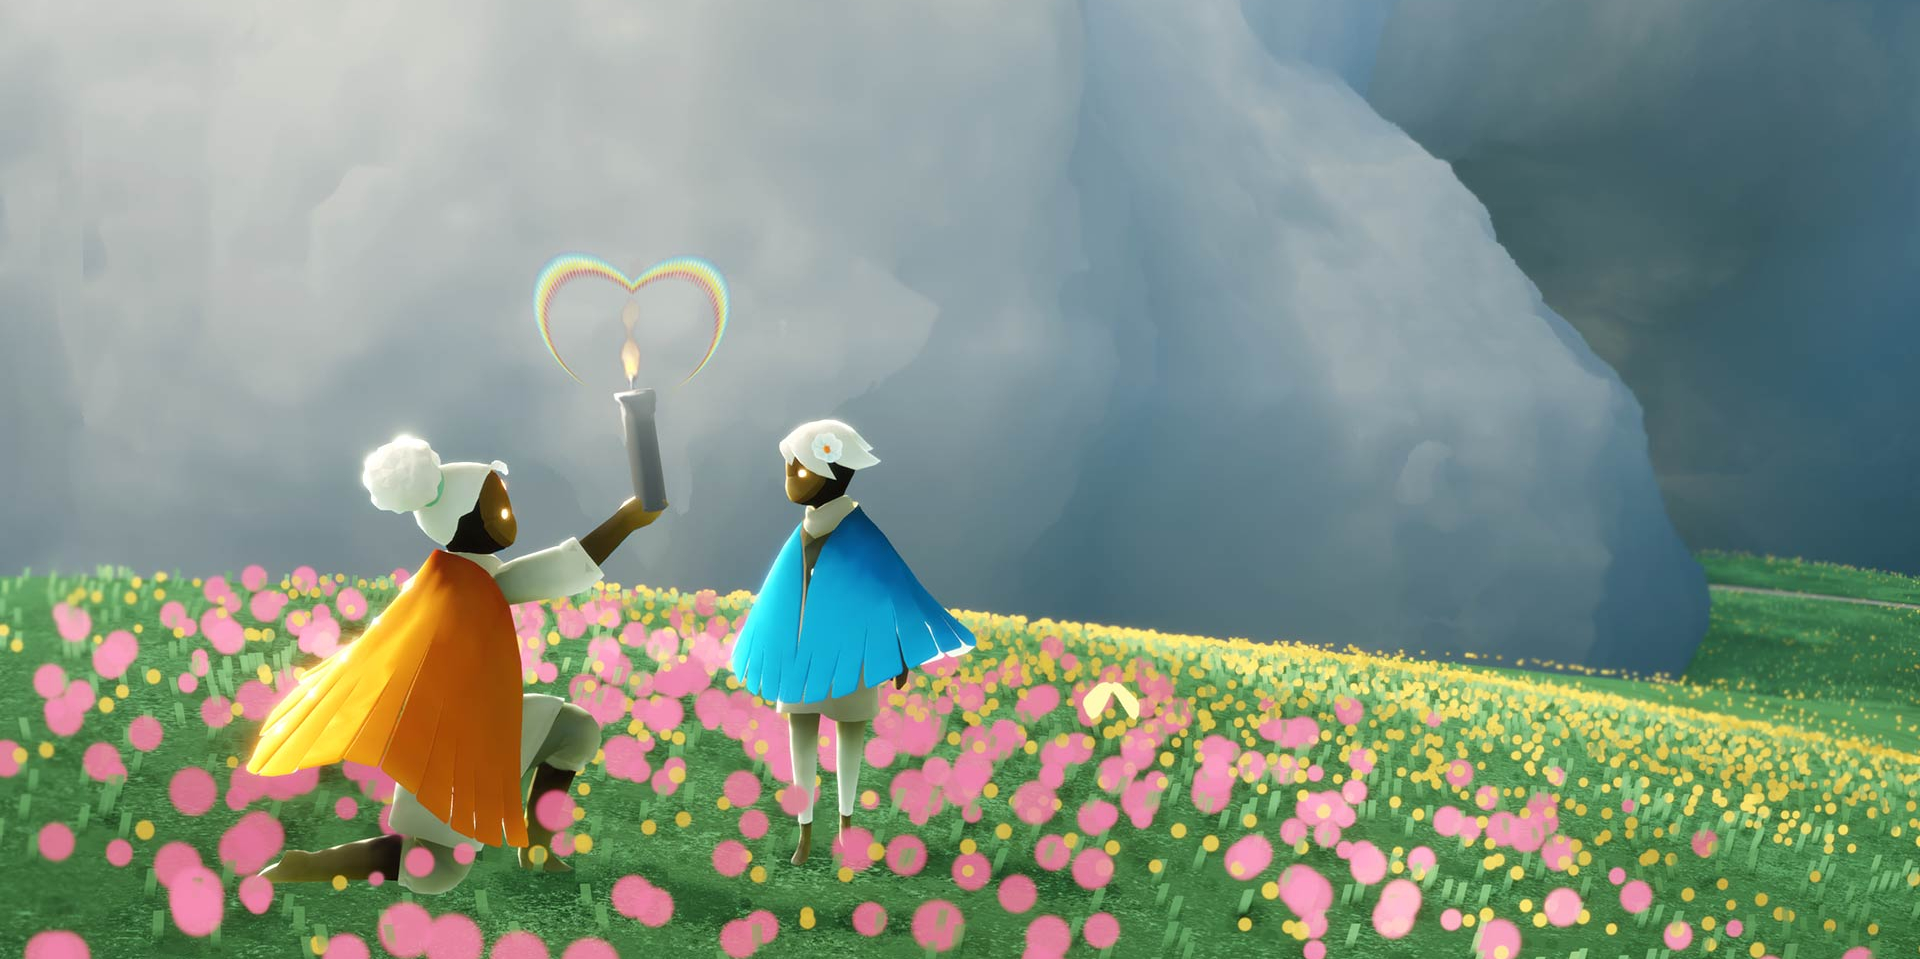 Sky: Children of the Light set to launch its Days of Healing charity event next week